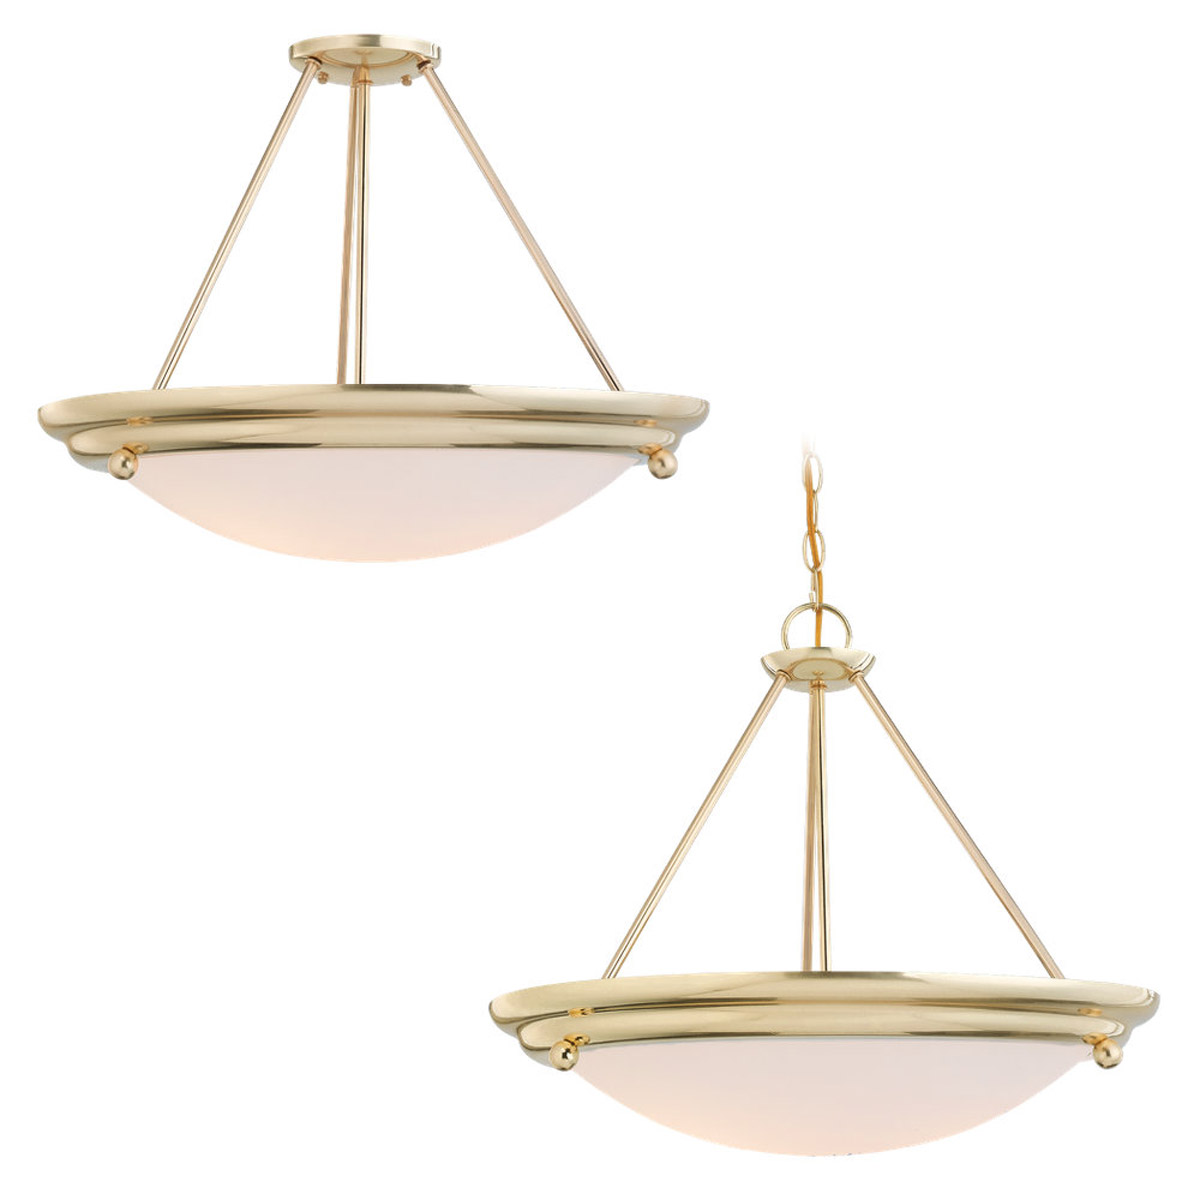 Sea Gull Lighting Centra 4 Light Fluorescent Semi-Flush Mount in Polished Brass 69238BLE-02 photo